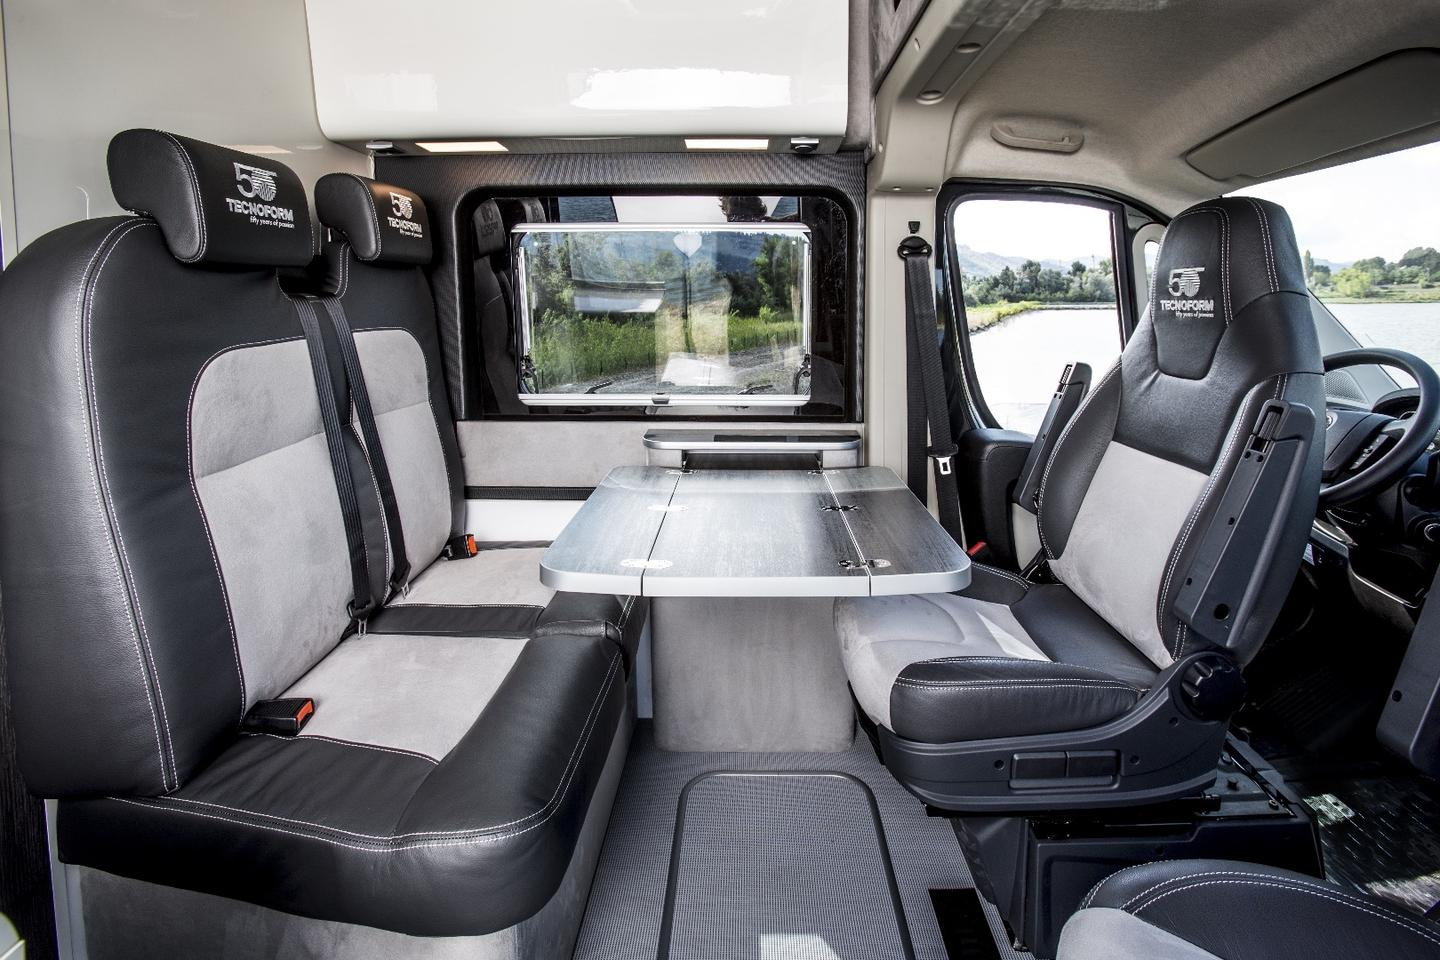 The Ducato 4x4 Expedition Camper show van has a simple dining layout